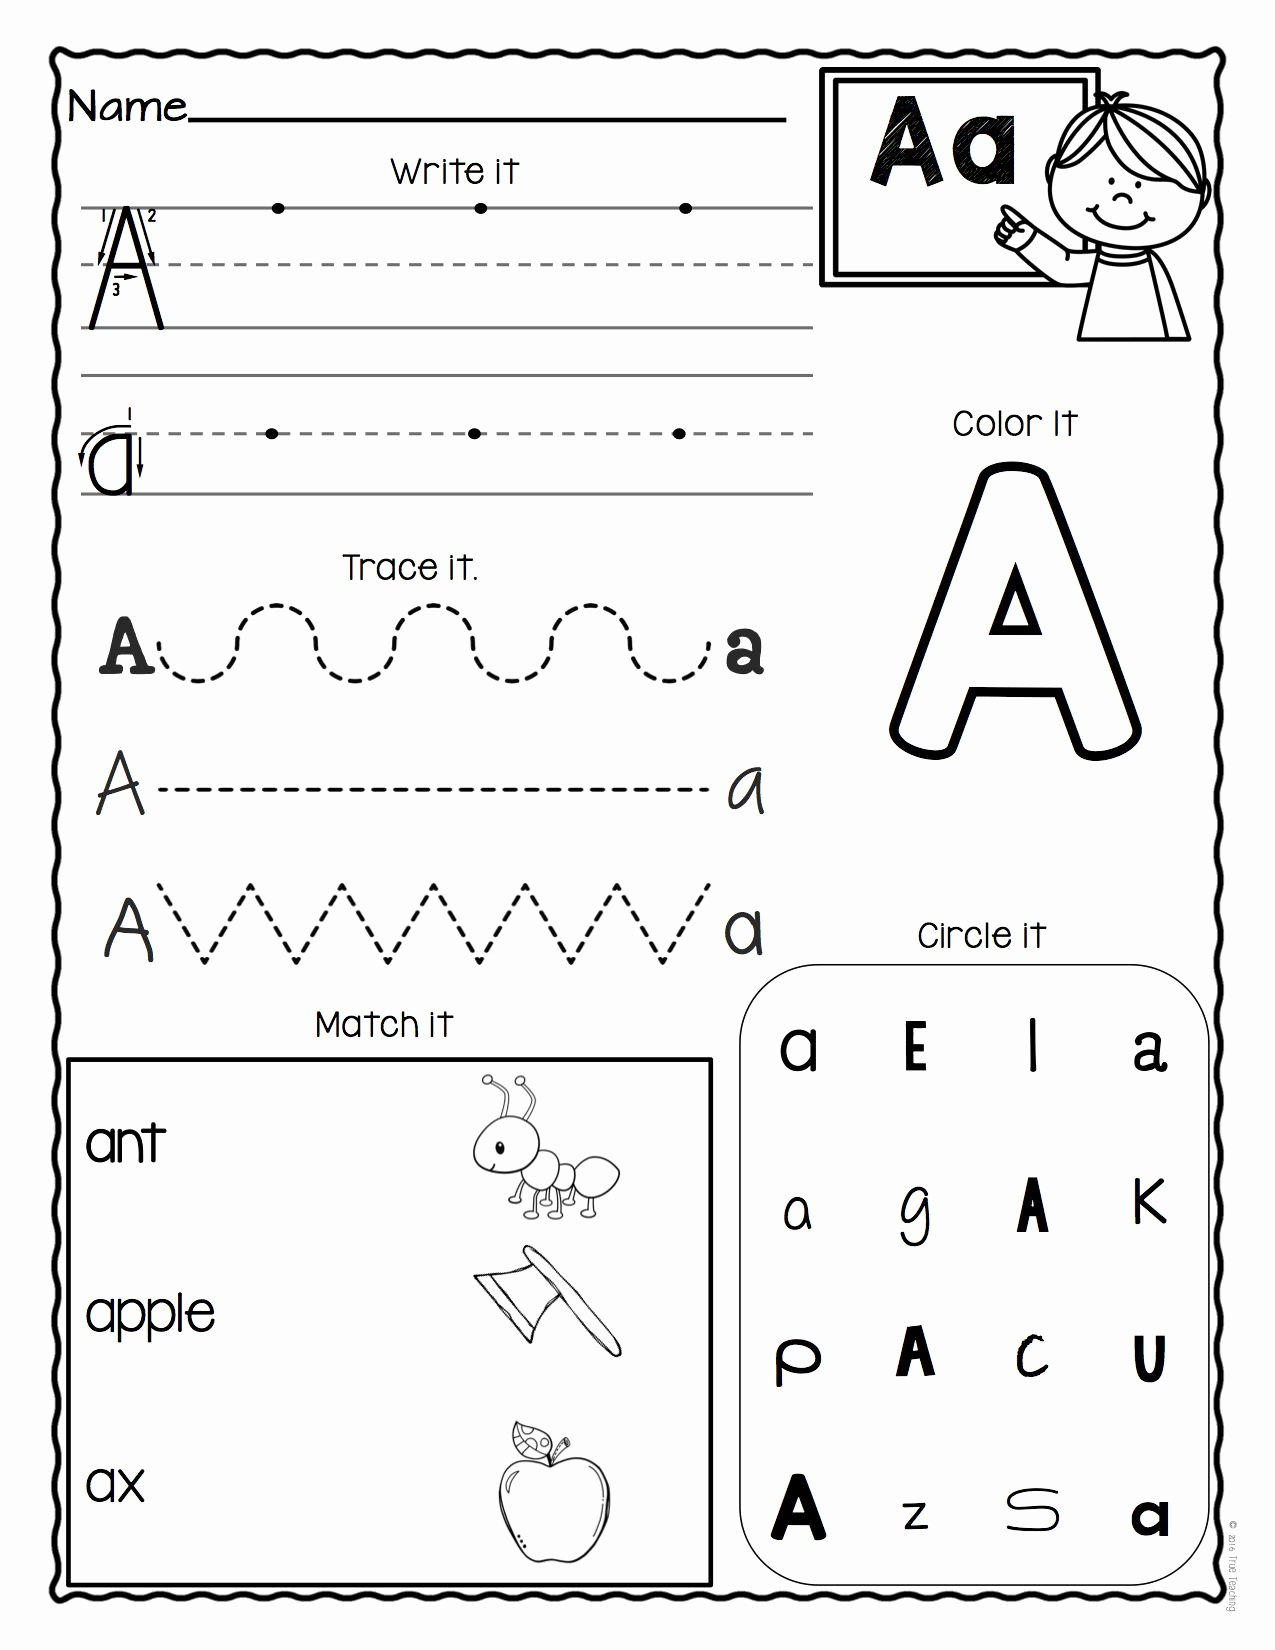 The Alphabet Worksheets for Preschoolers Best Of A Z Letter Worksheets Set 3